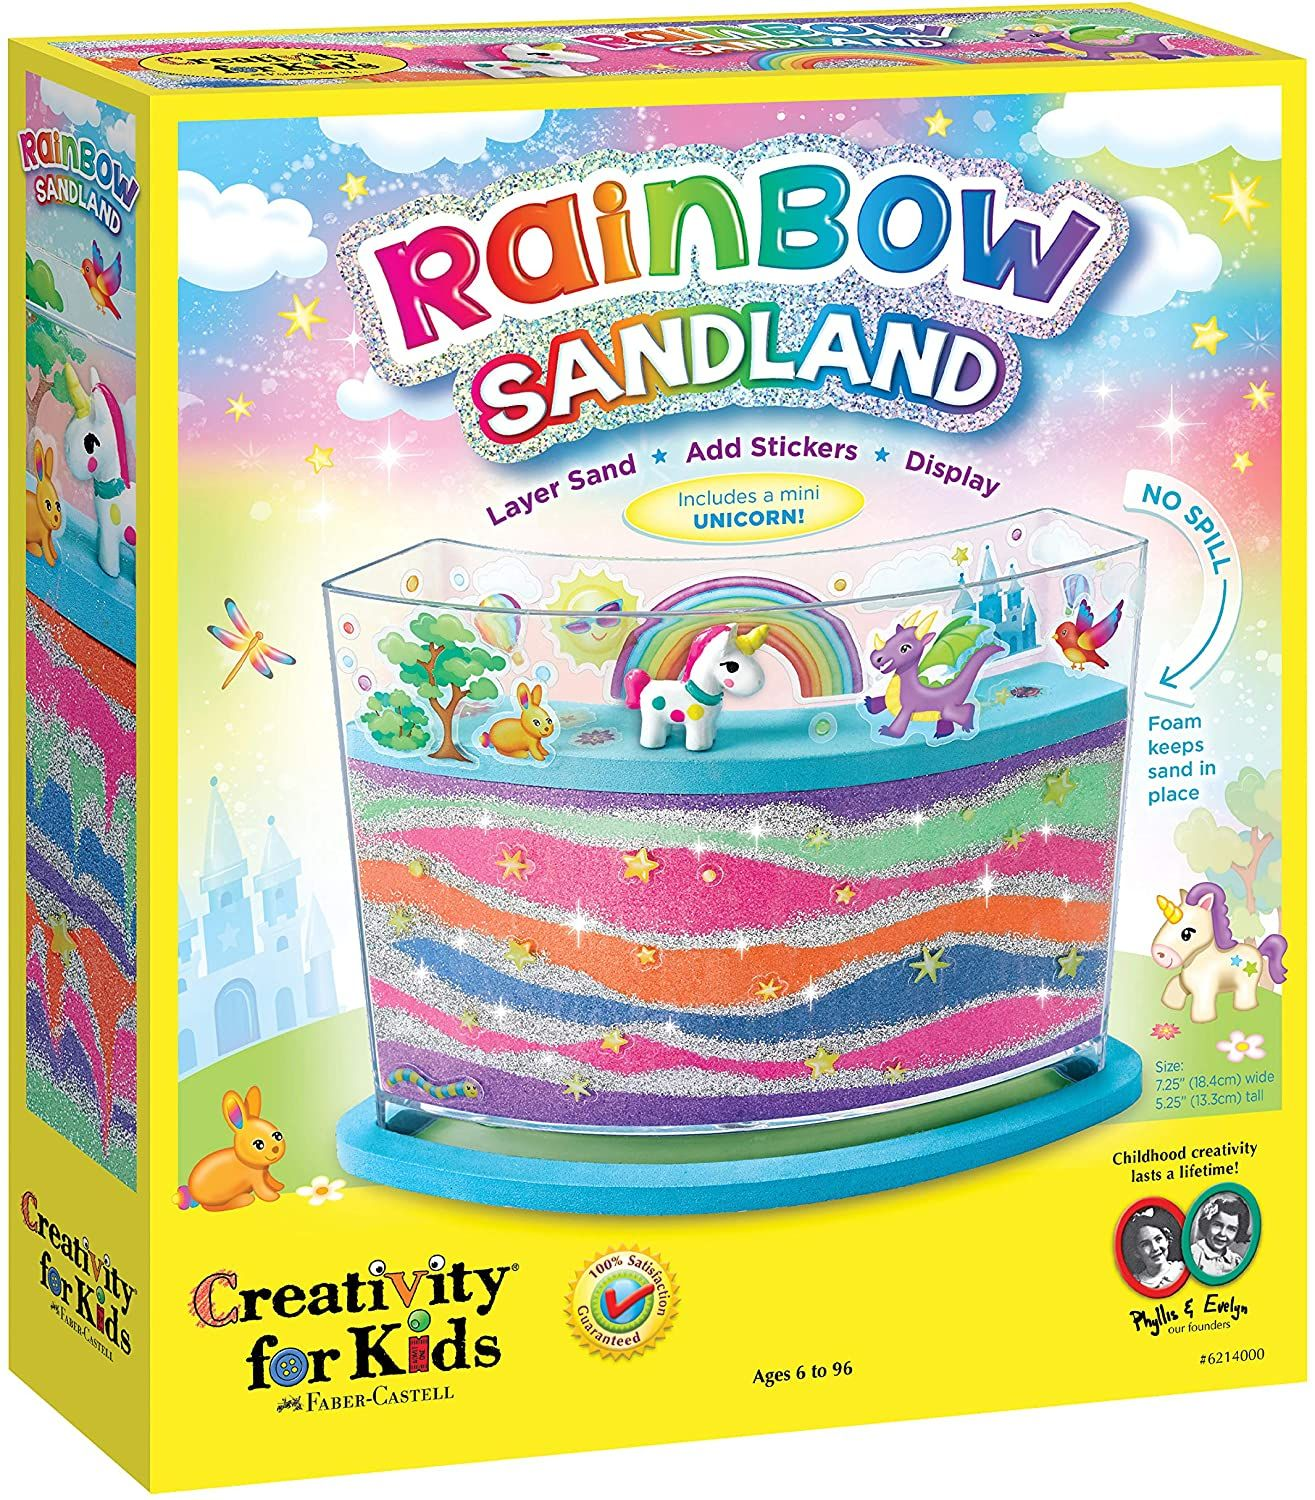 gifts for 5 year old girls-10.jpg